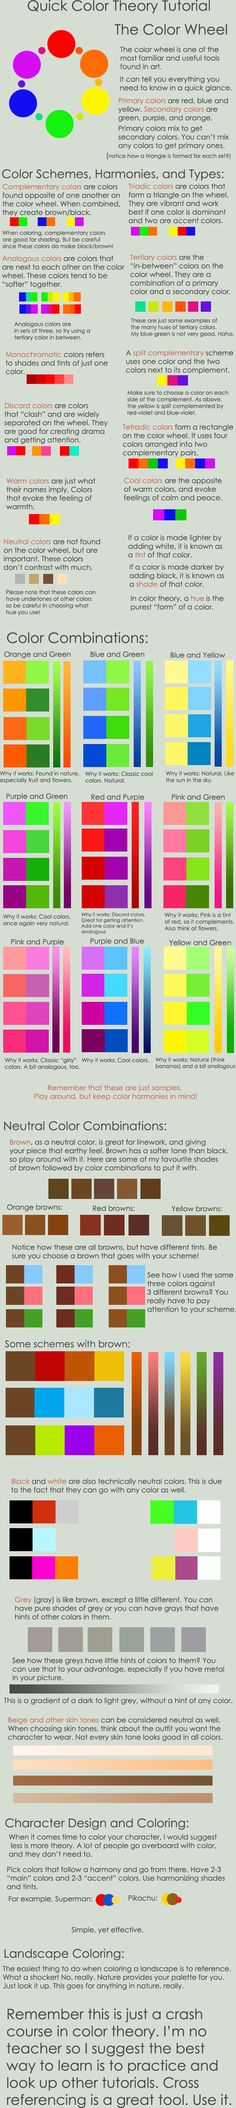 La teoría del color, simple guia para aprender a combinar colores. #infografia